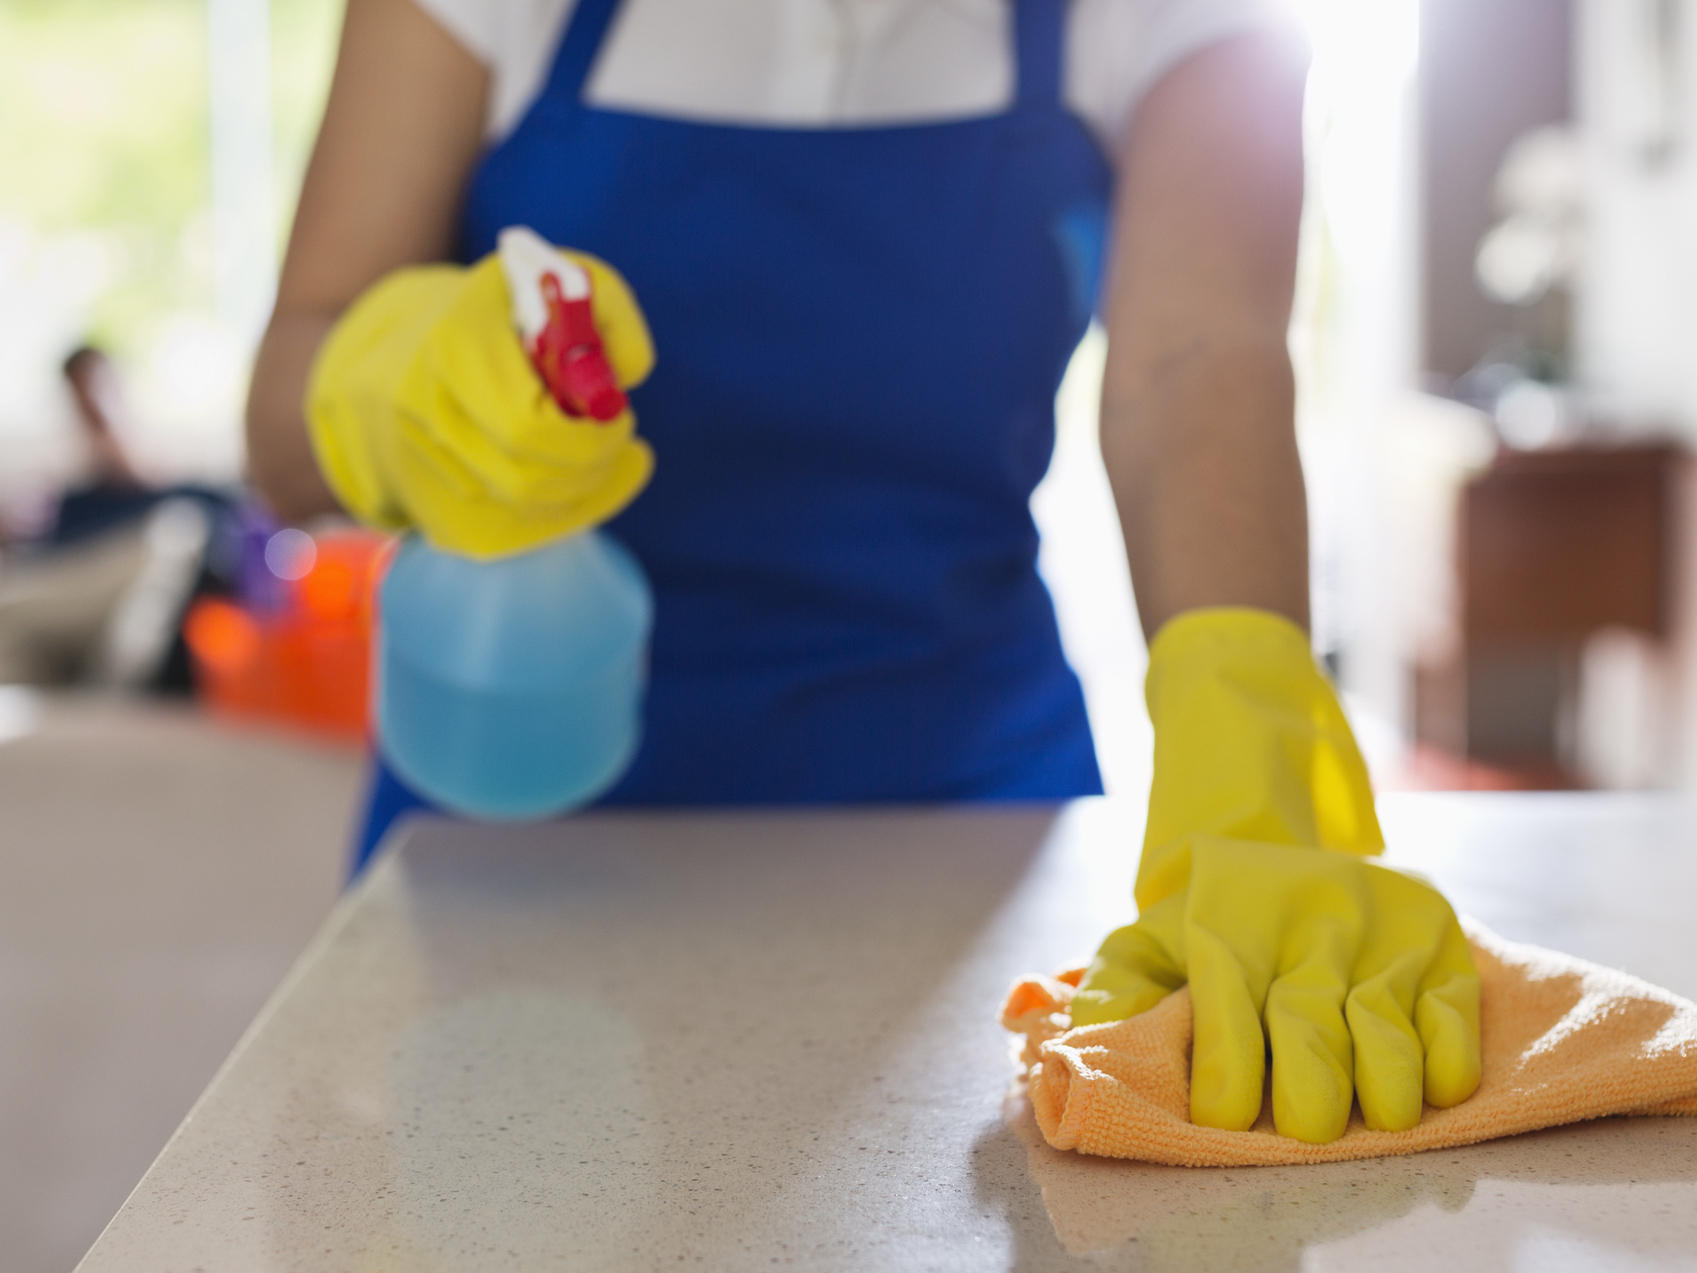 Cleaning Compounds | Cleaning Compounds For House